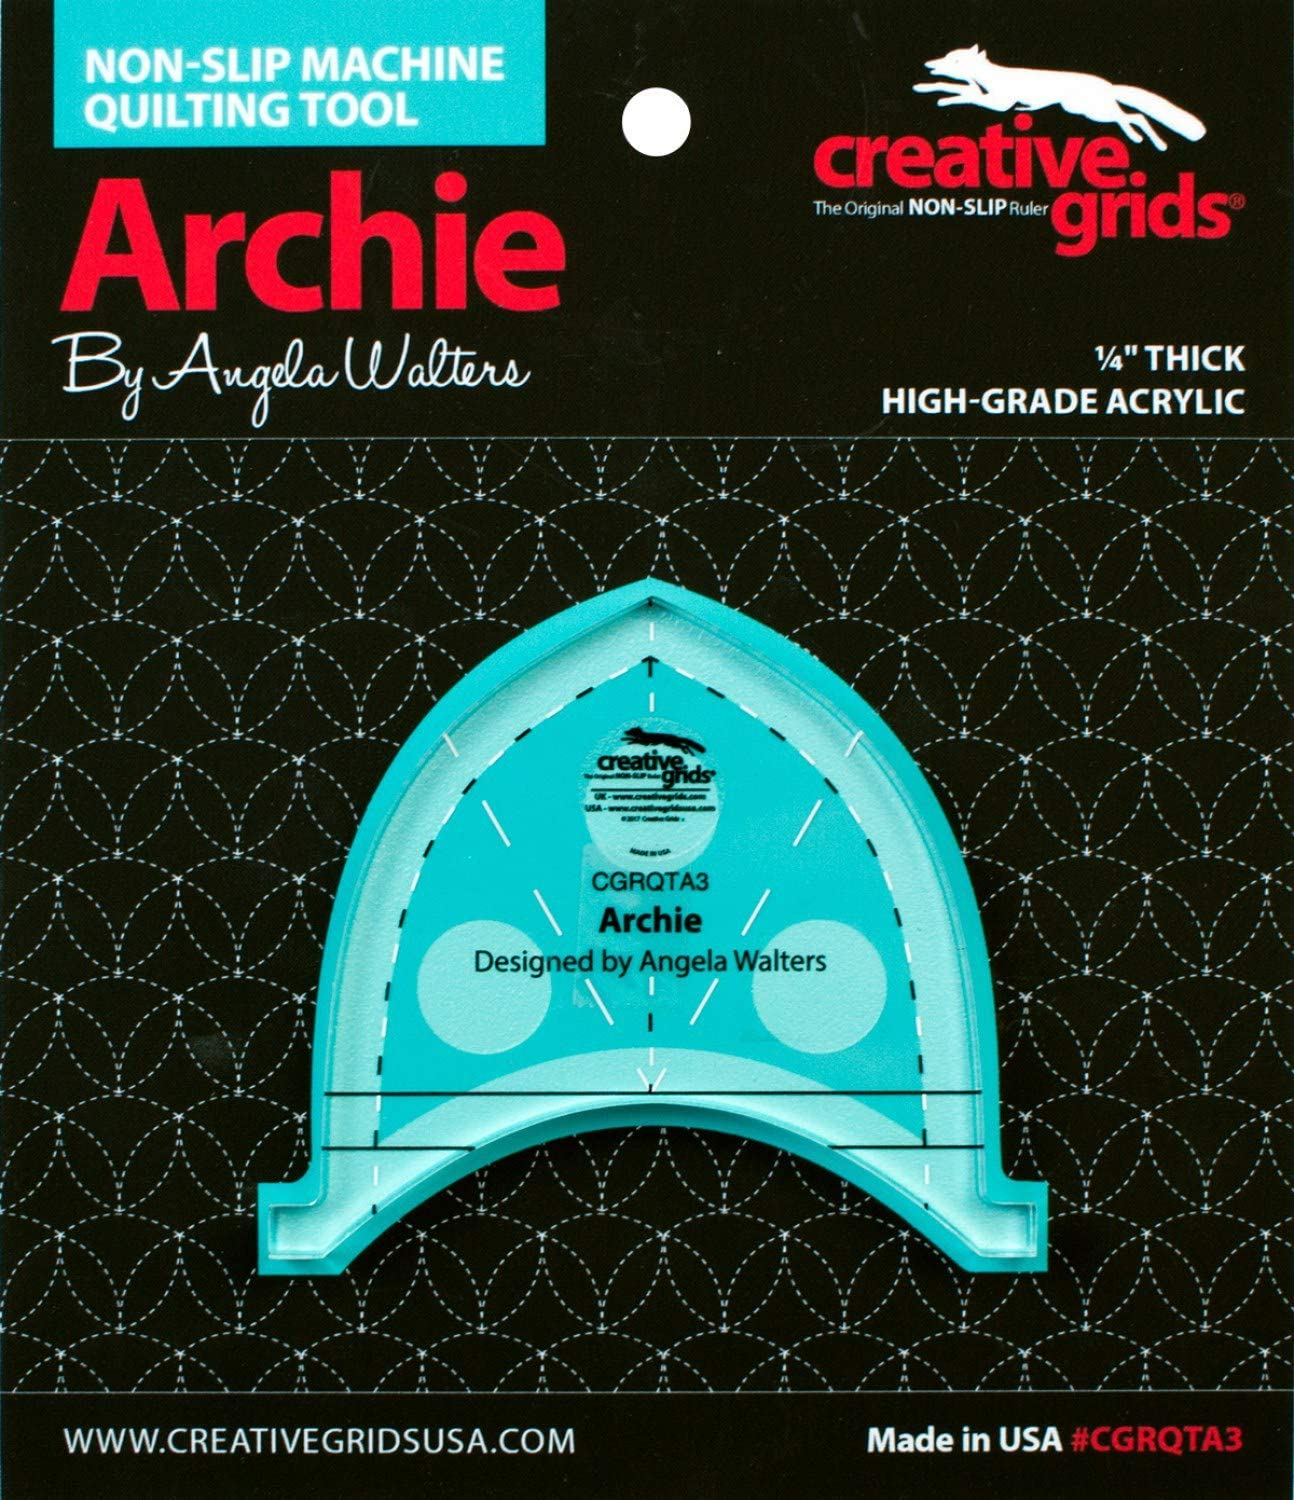 Creative Grids Machine Quilting Tool 3 Pack Designed by Angela Walters Squiggy Slim Archie